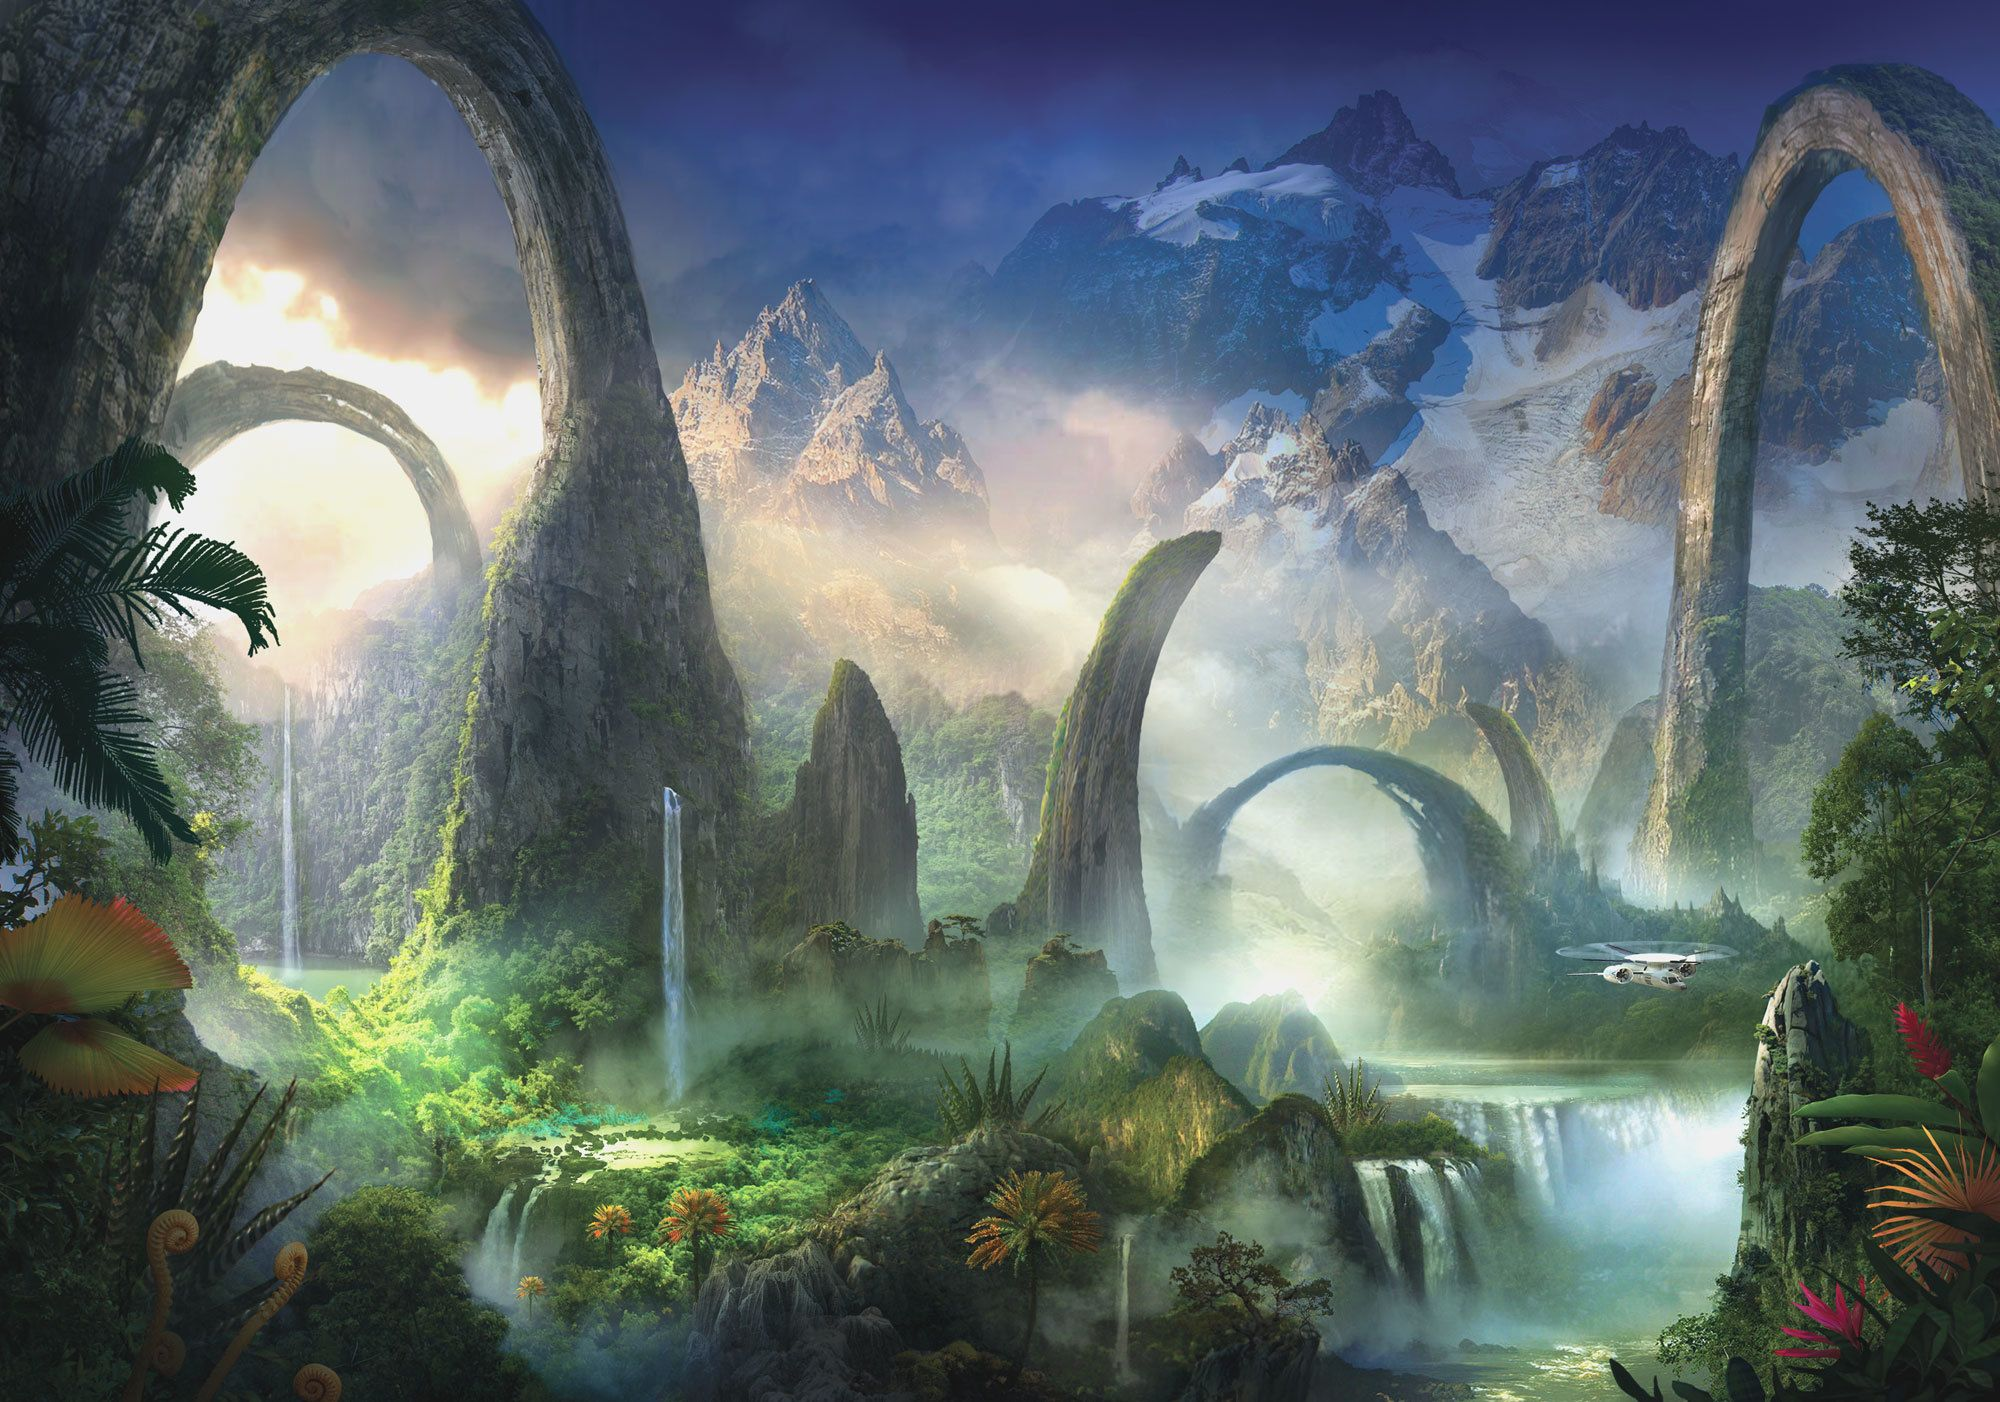 fantasy art landscapes water - Google Search | FantasyScapes ... for Fantasy Water Landscape  177nar